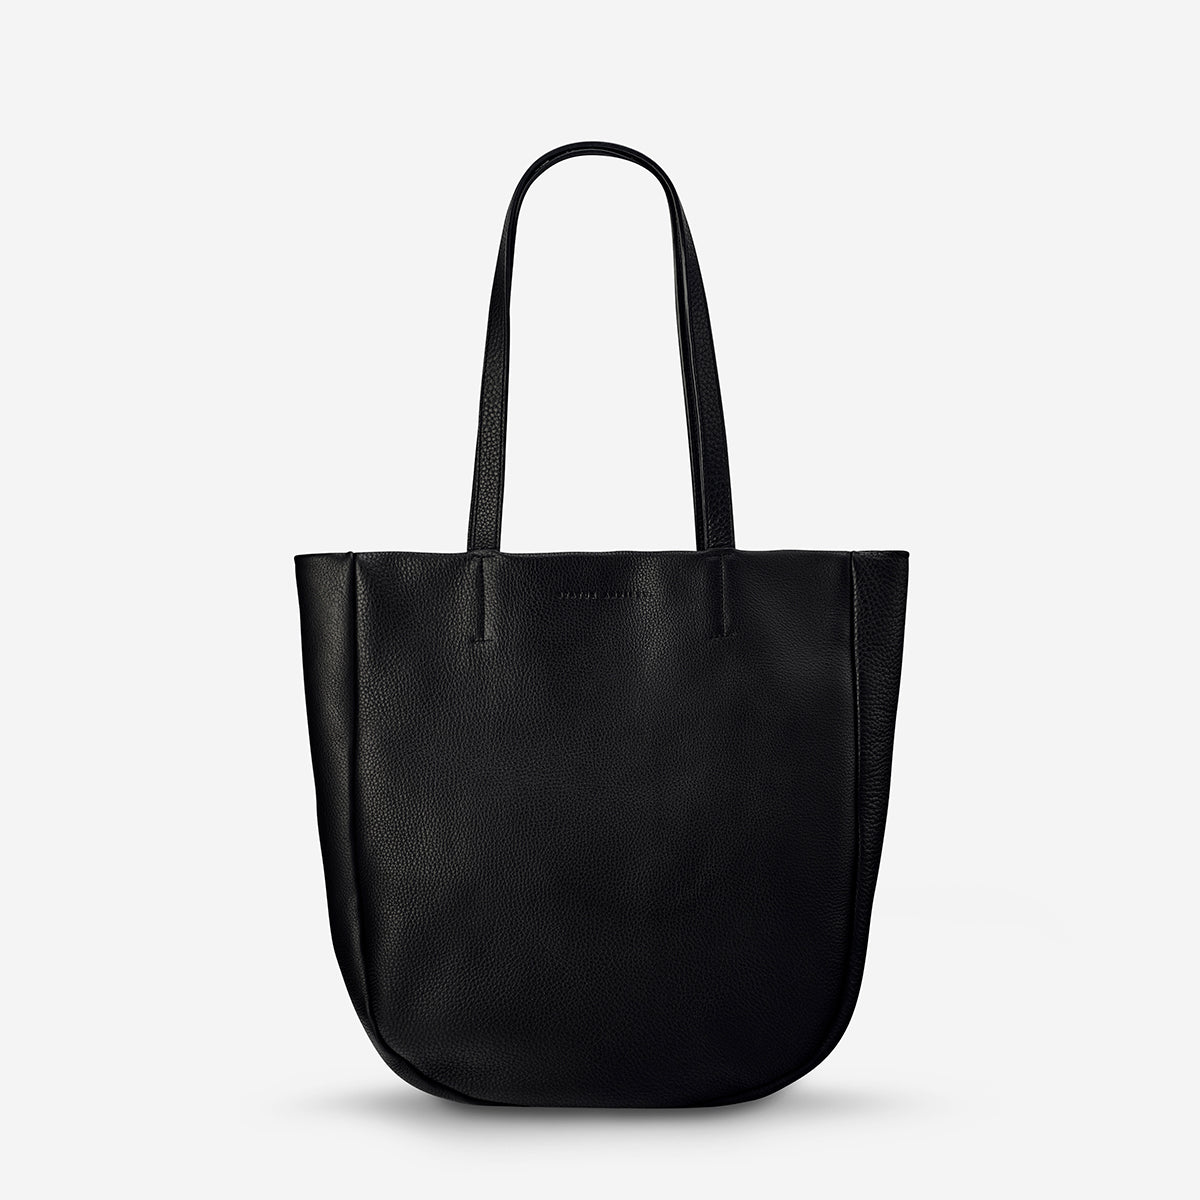 APPOINTED - black · Status Anxiety Appointed Women s Large Leather Tote Bag  - Black ... f24b36e95be2f